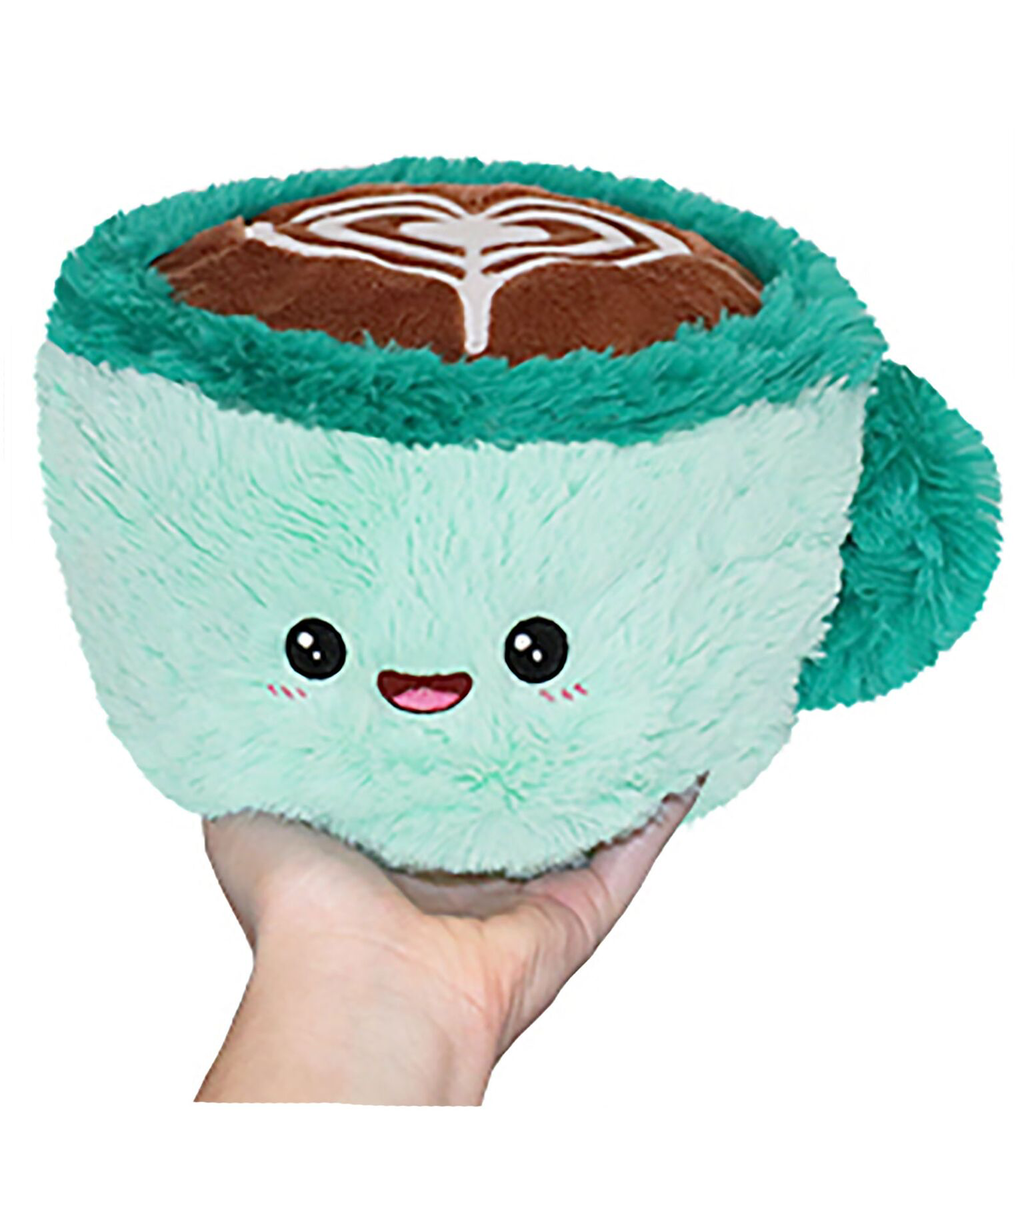 Mini Squishable Comfort Latte